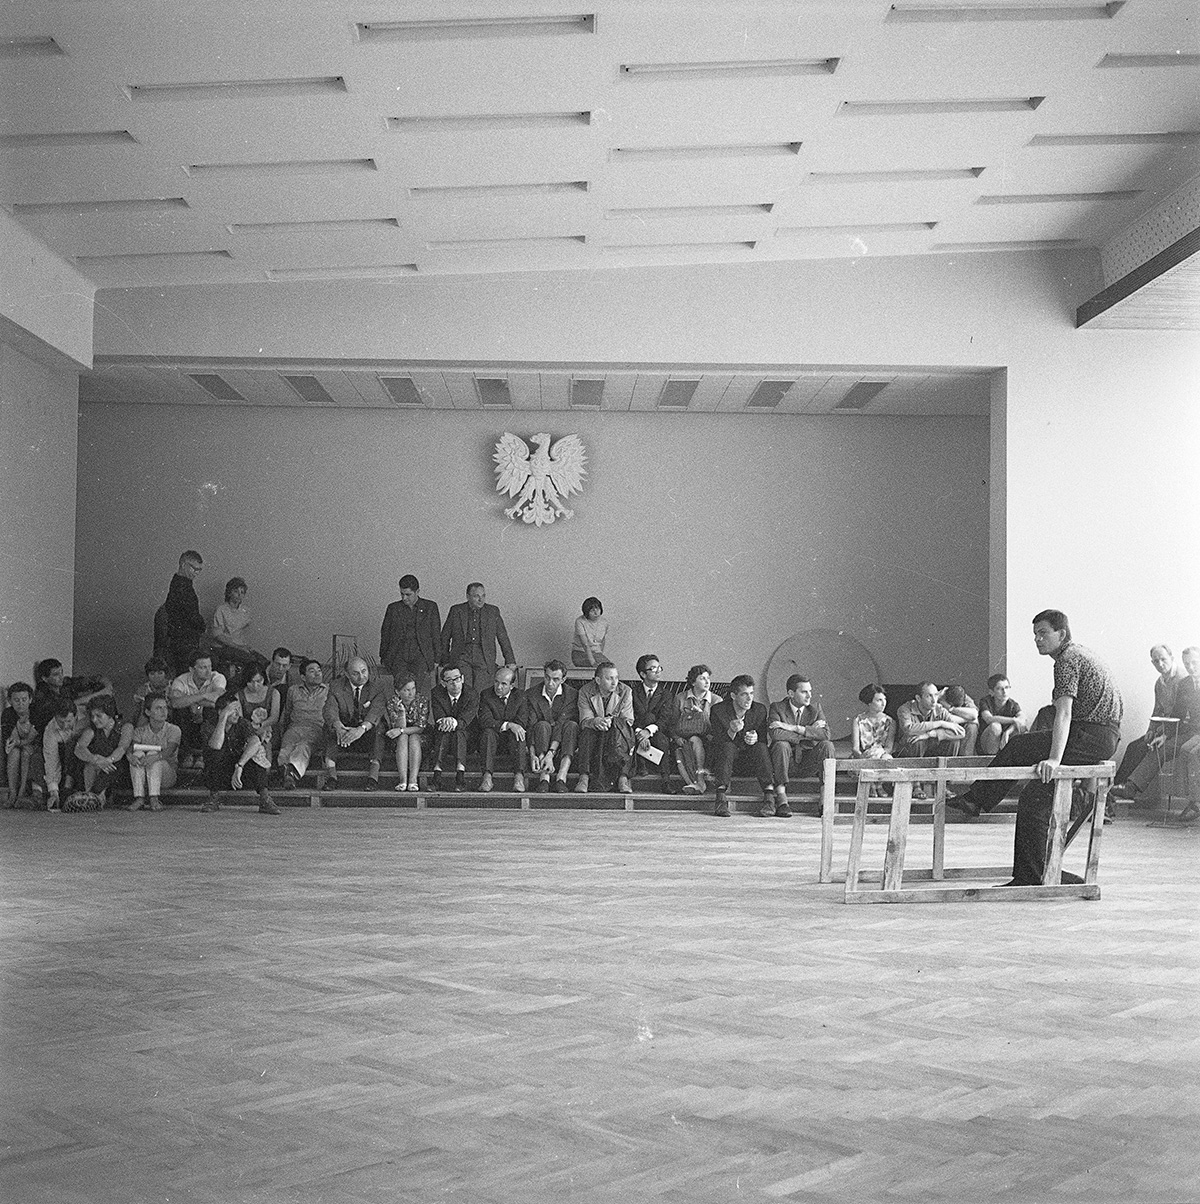 "Eustachy Kossakowski, 1st Symposium of Visual Artists and Scientists ""Art in a Changing World"", Puławy, 1966 © Anka Ptaszkowska, Paulina Krasińska. The negatives are owned by the Museum of Modern Art in Warsaw"